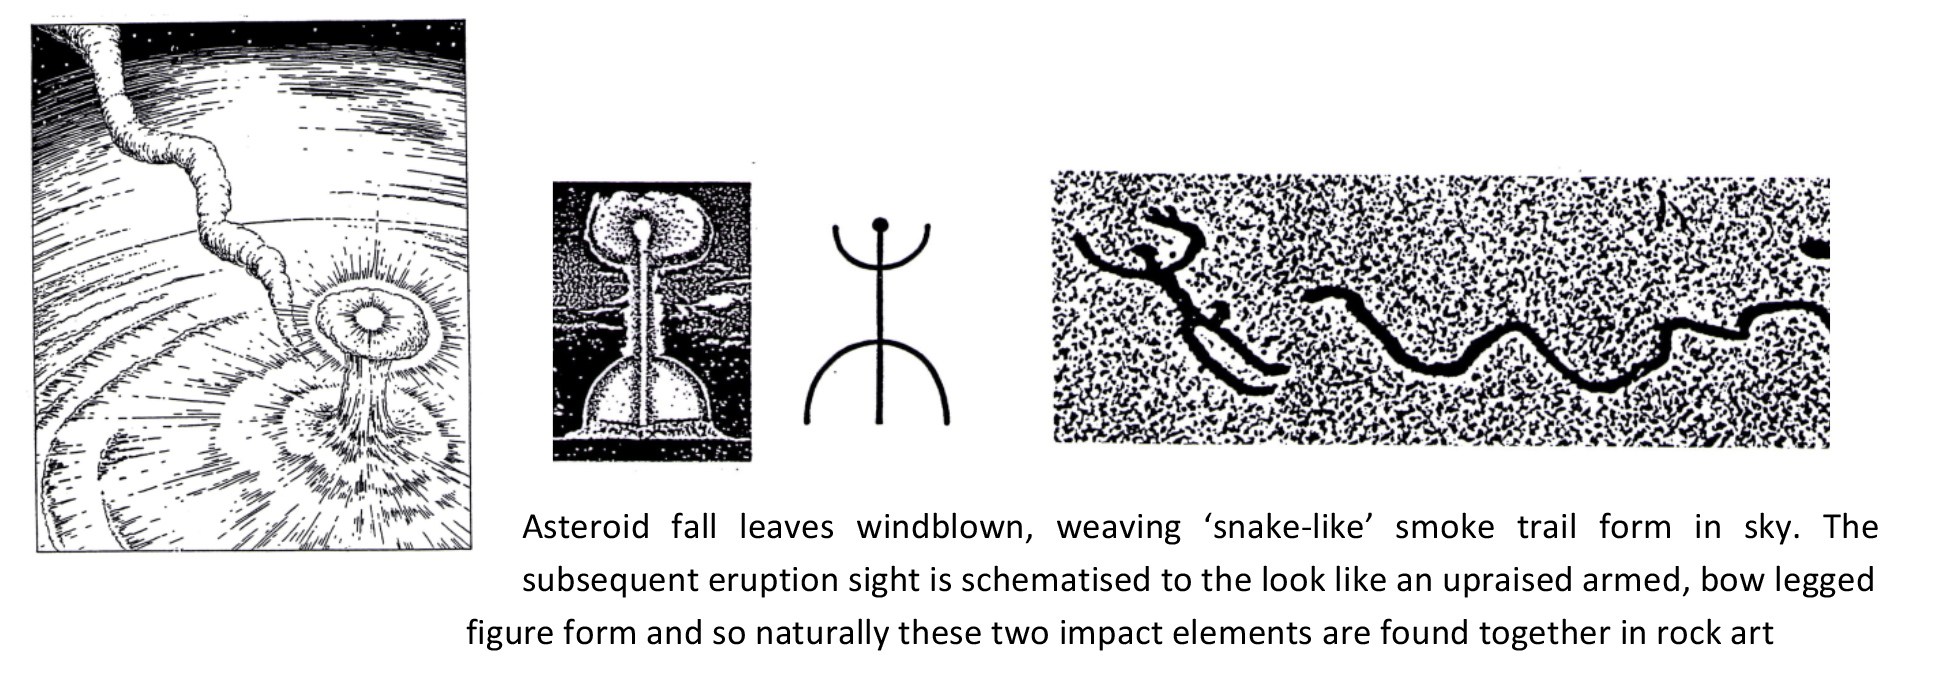 The snake asteroid impact mythology the snake in the sky eruption found together in rock art biocorpaavc Image collections